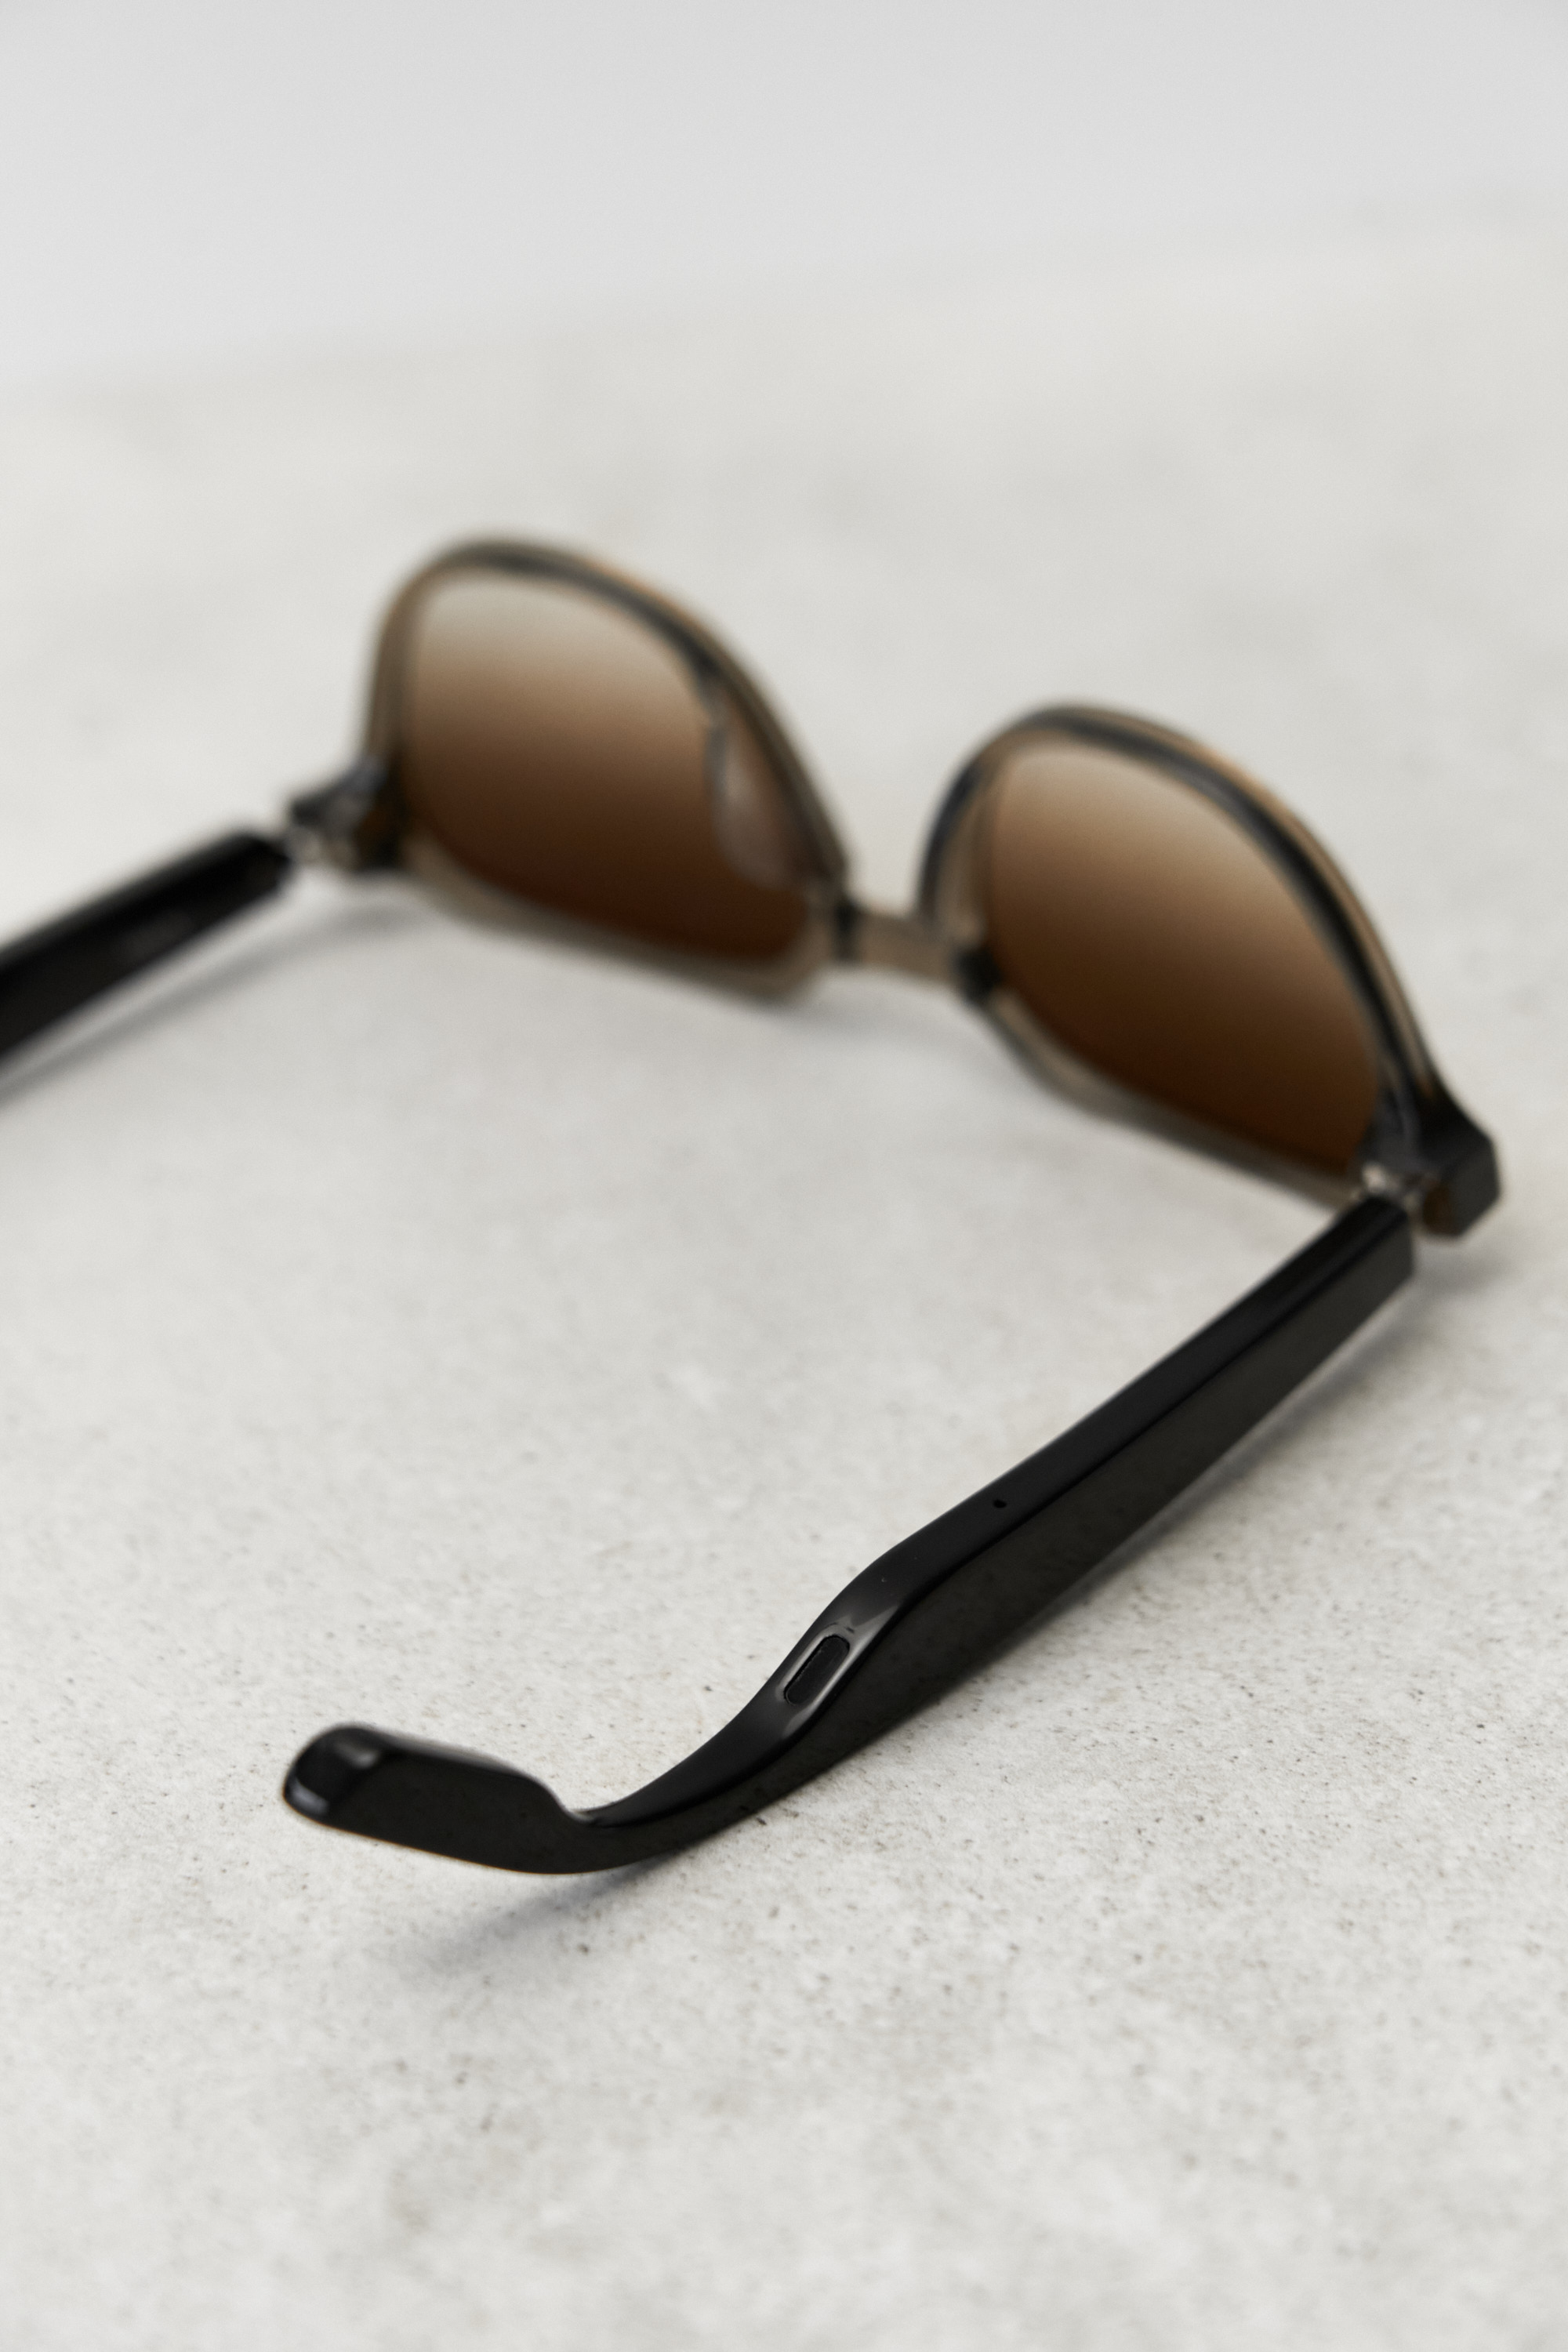 Aether Audio Eyewear Review | Softer Volumes